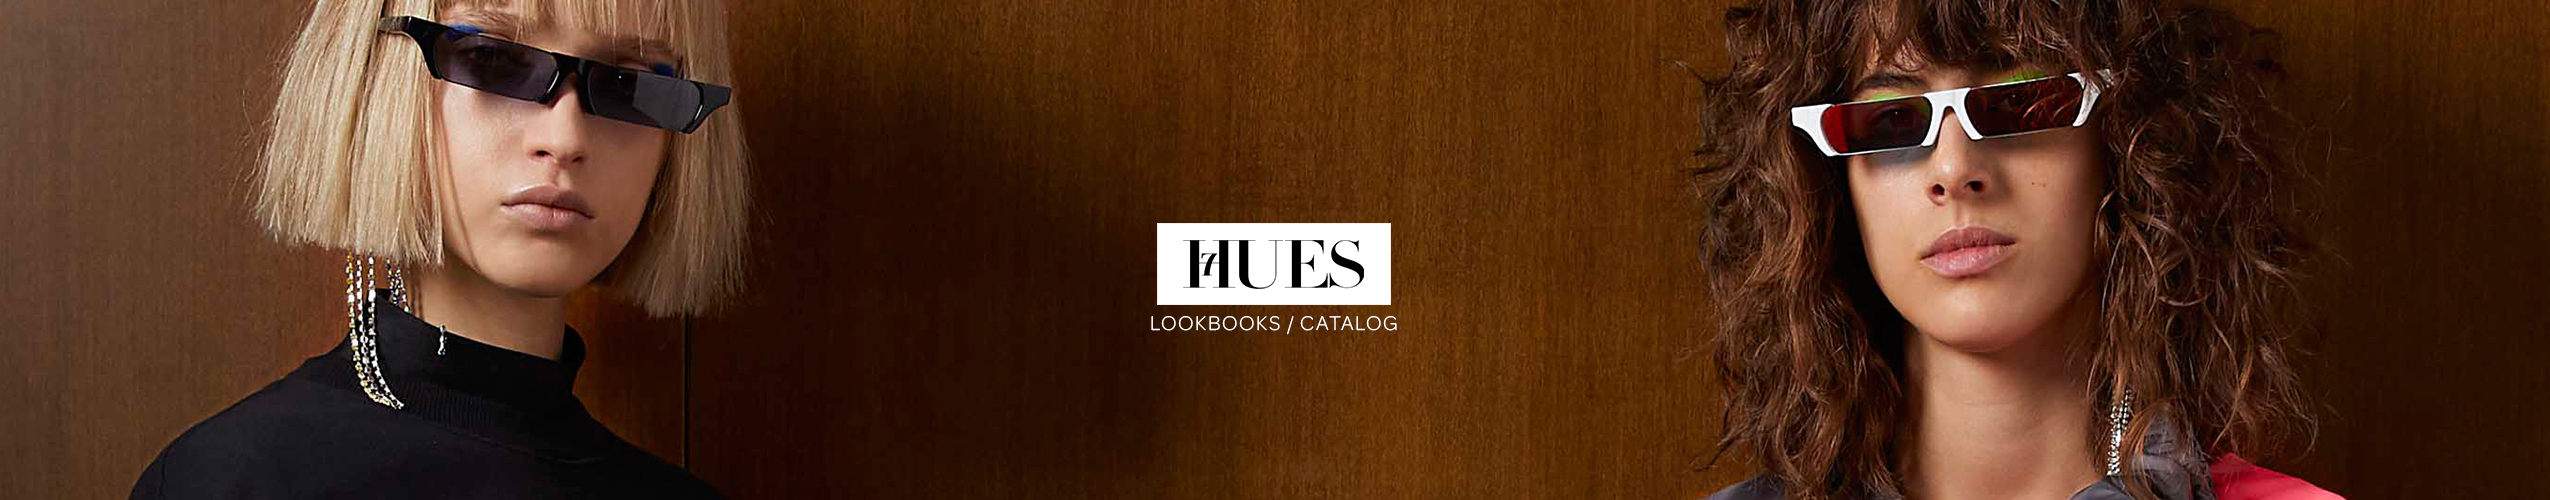 mode-lookbooks---catalogs---page-banners